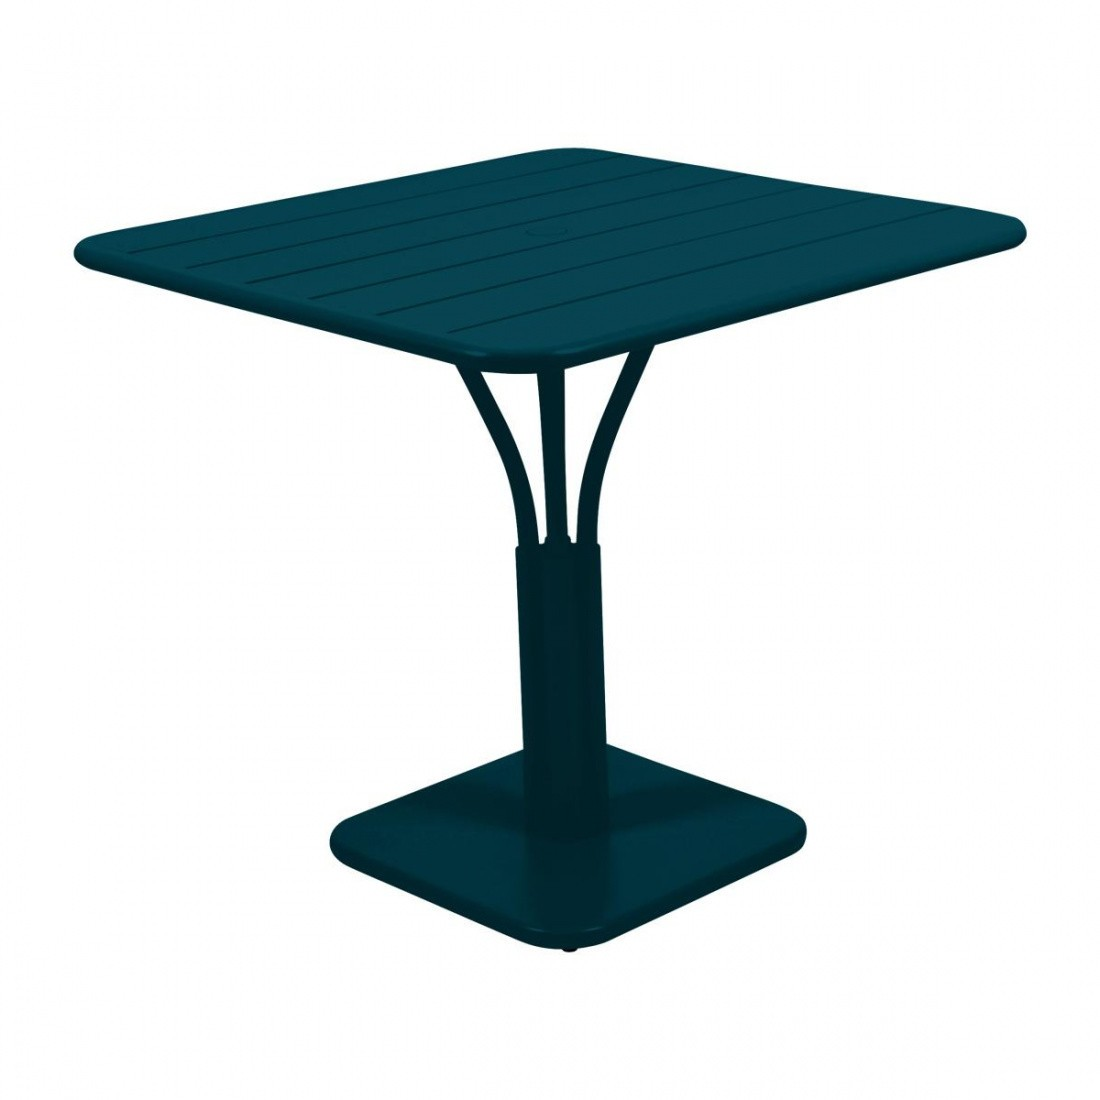 Table Luxembourg Luxembourg Bistro Table 80x80x74cm